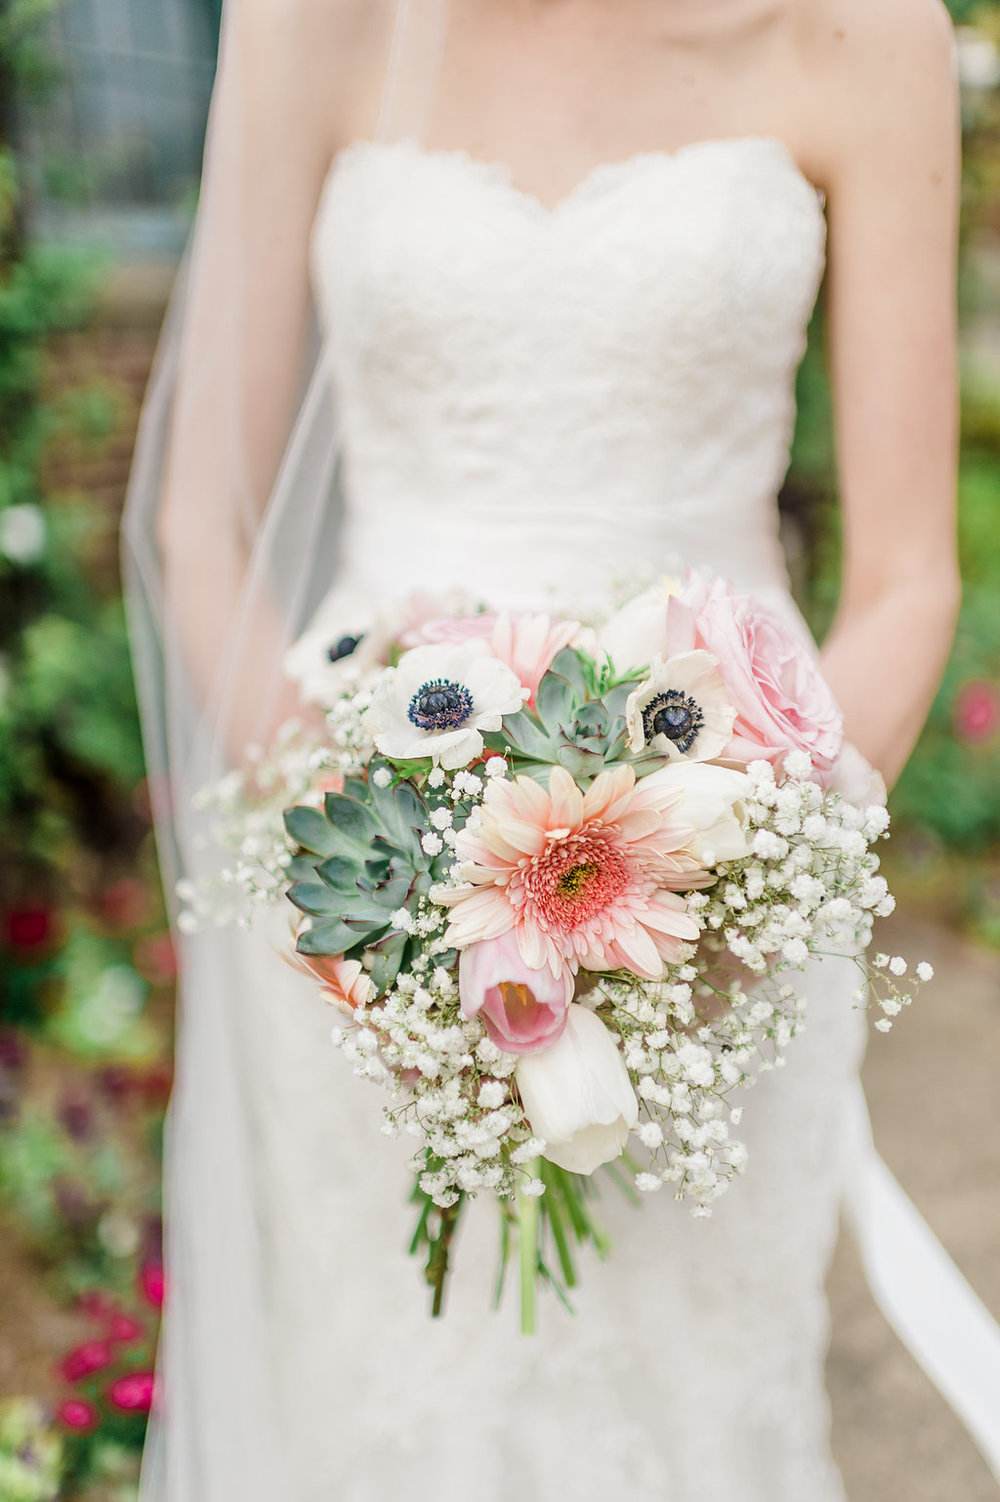 rach-lea-photography-rach-loves-troy-roundhouse-railroad-museum-wedding-ivory-and-beau-savannah-wedding-planner-savannah-weddings-savannah-florist-ivory-and-beau-bridal-boutique-succulent-blush-wedding-21.jpg